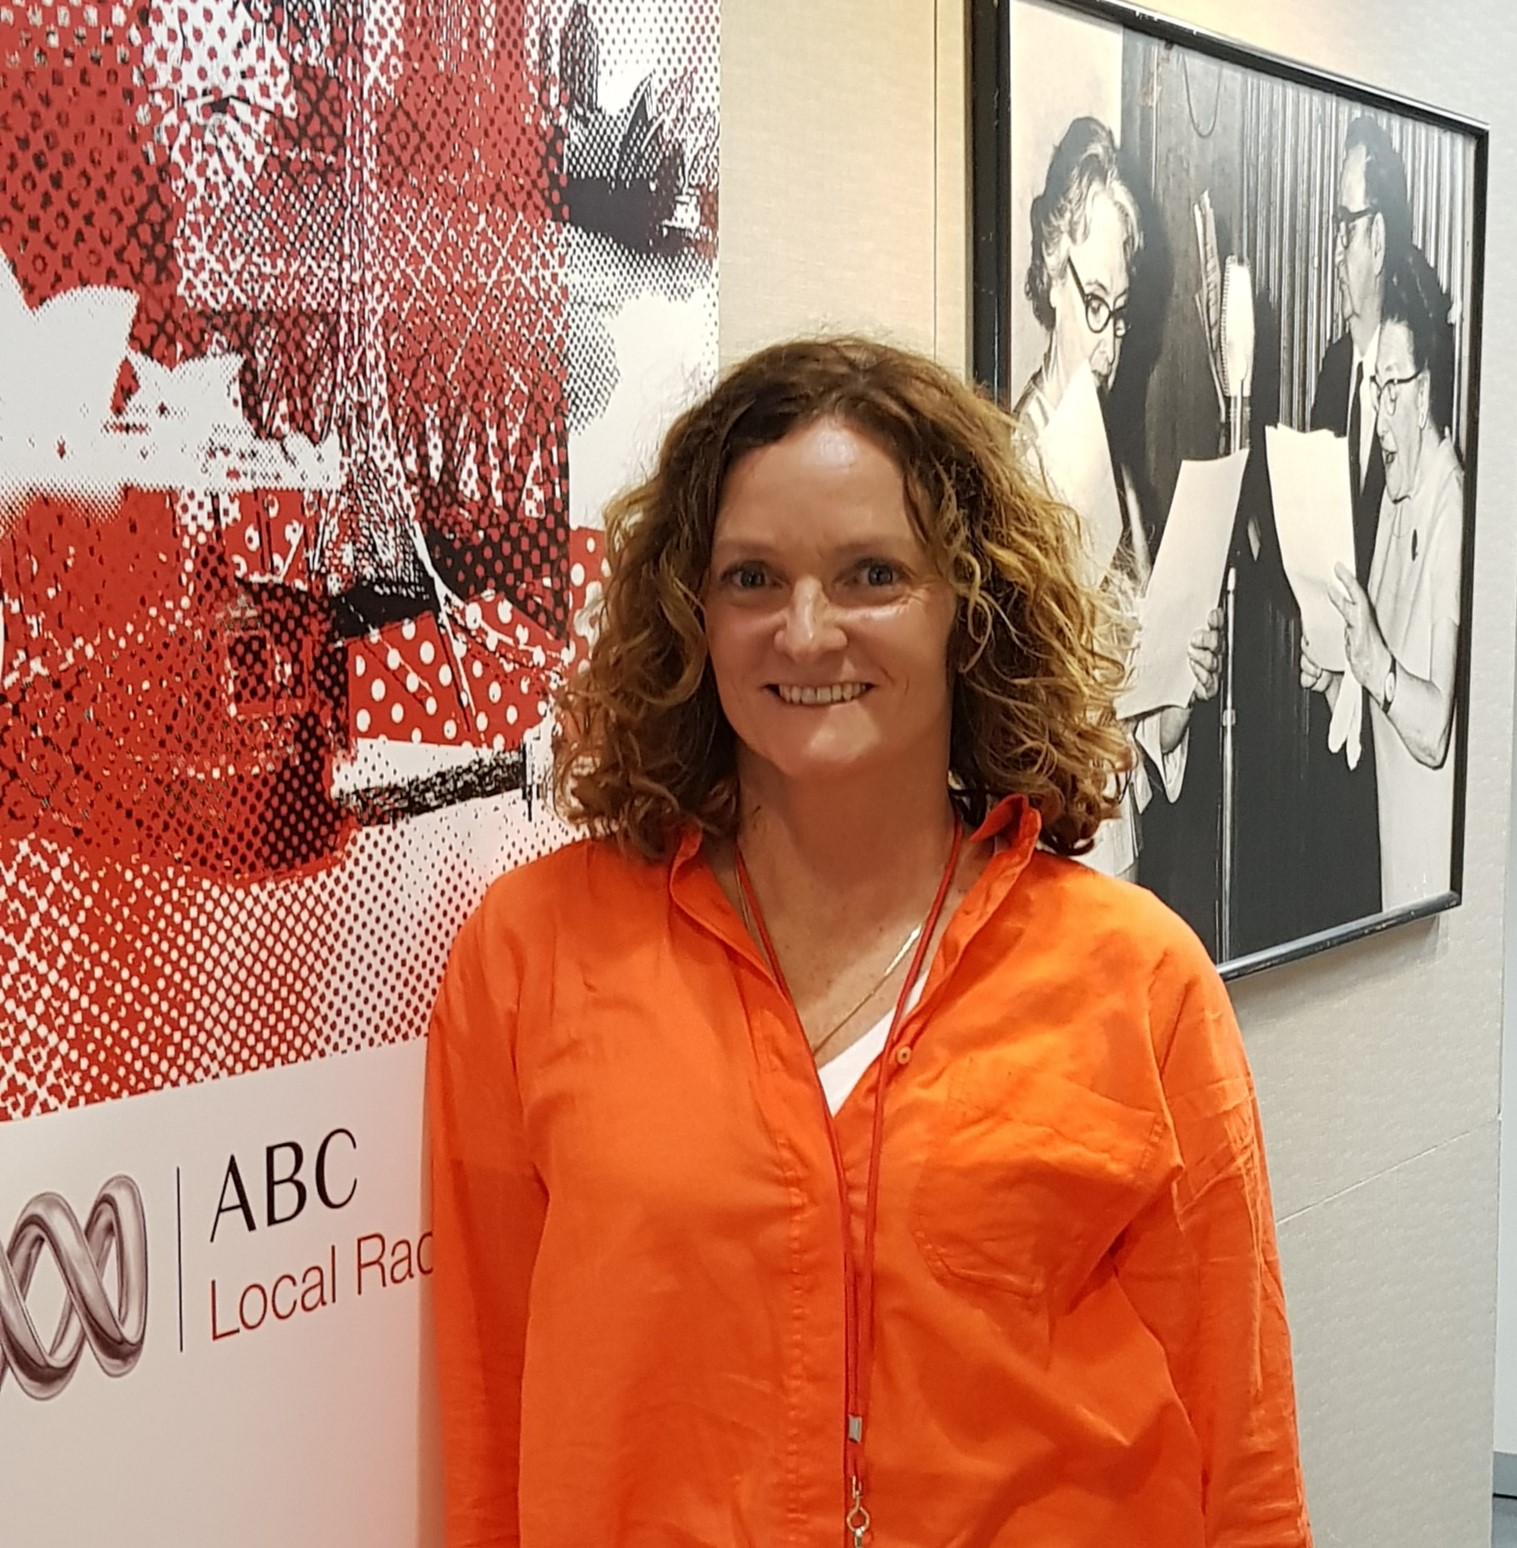 Sonja at ABC Radio.jpg